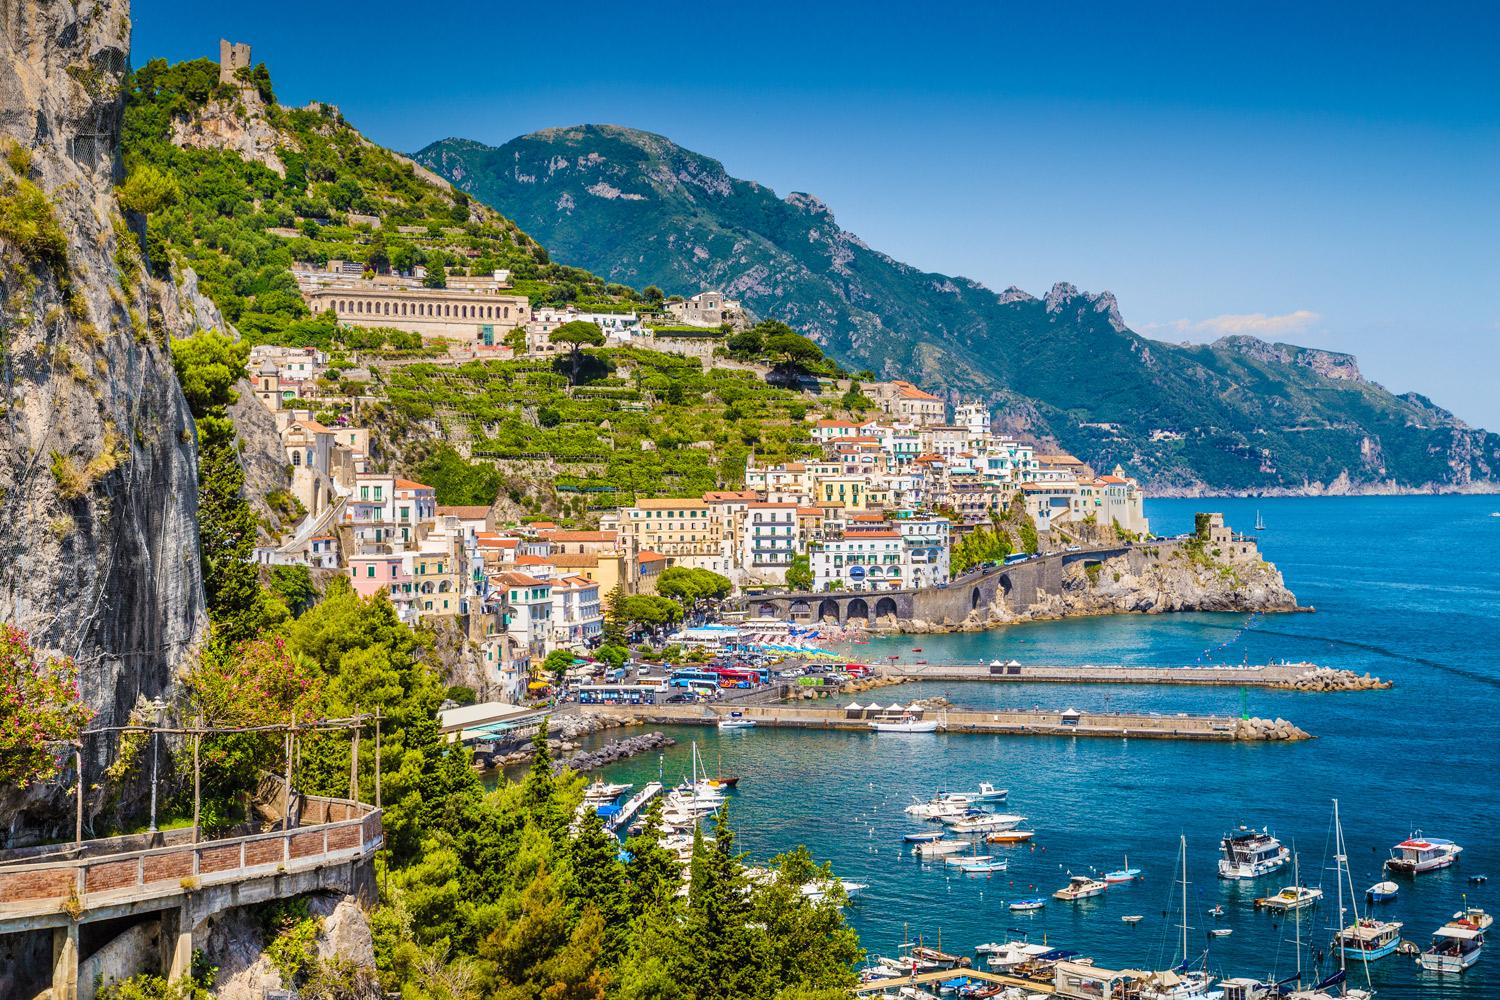 Stay your first two nights in lovely Amalfi town